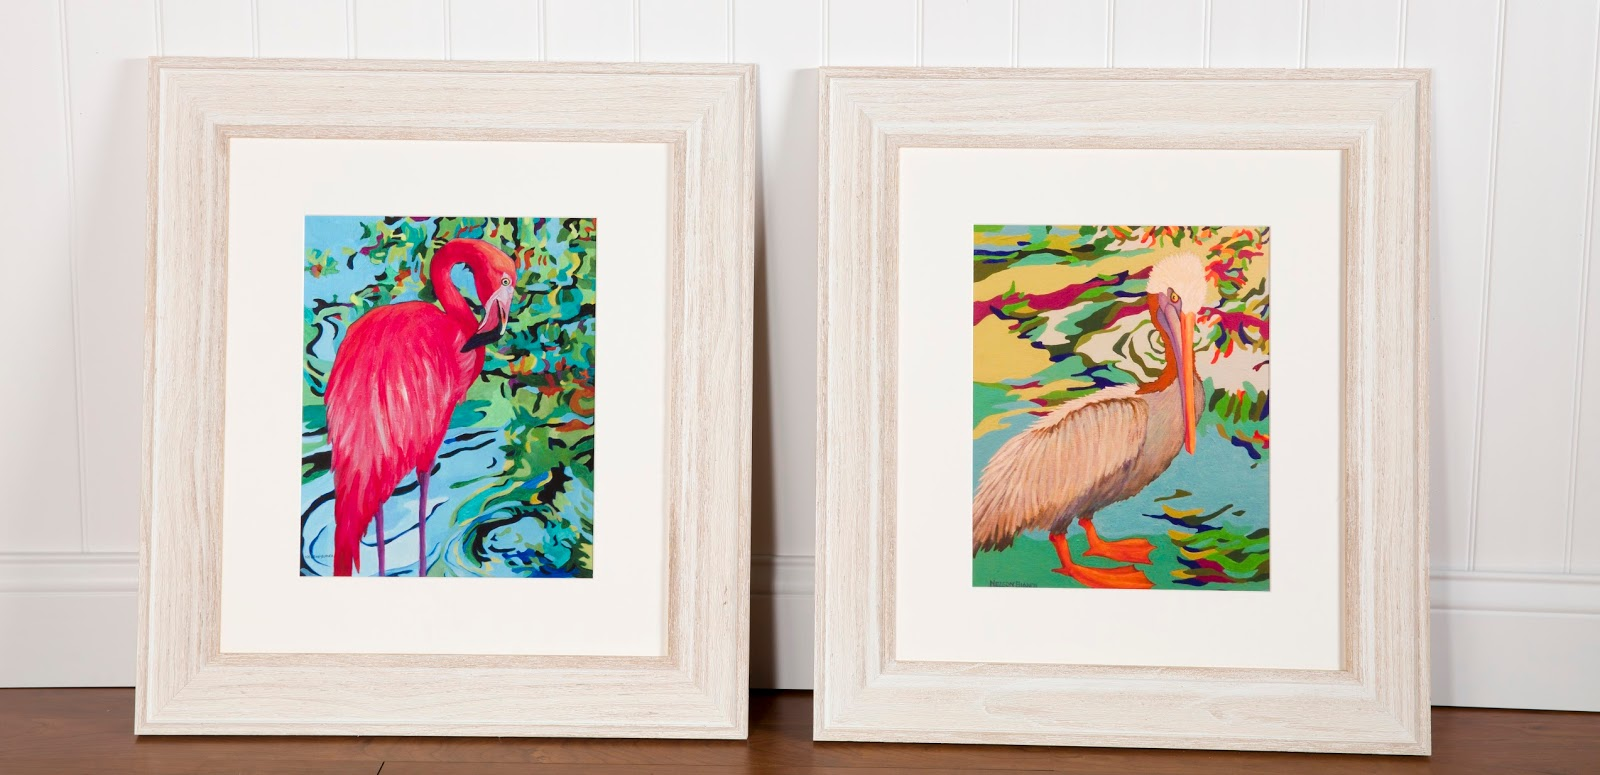 Picture Framing Blog - A Good Frame of Mind: Framing for Coastal Themes